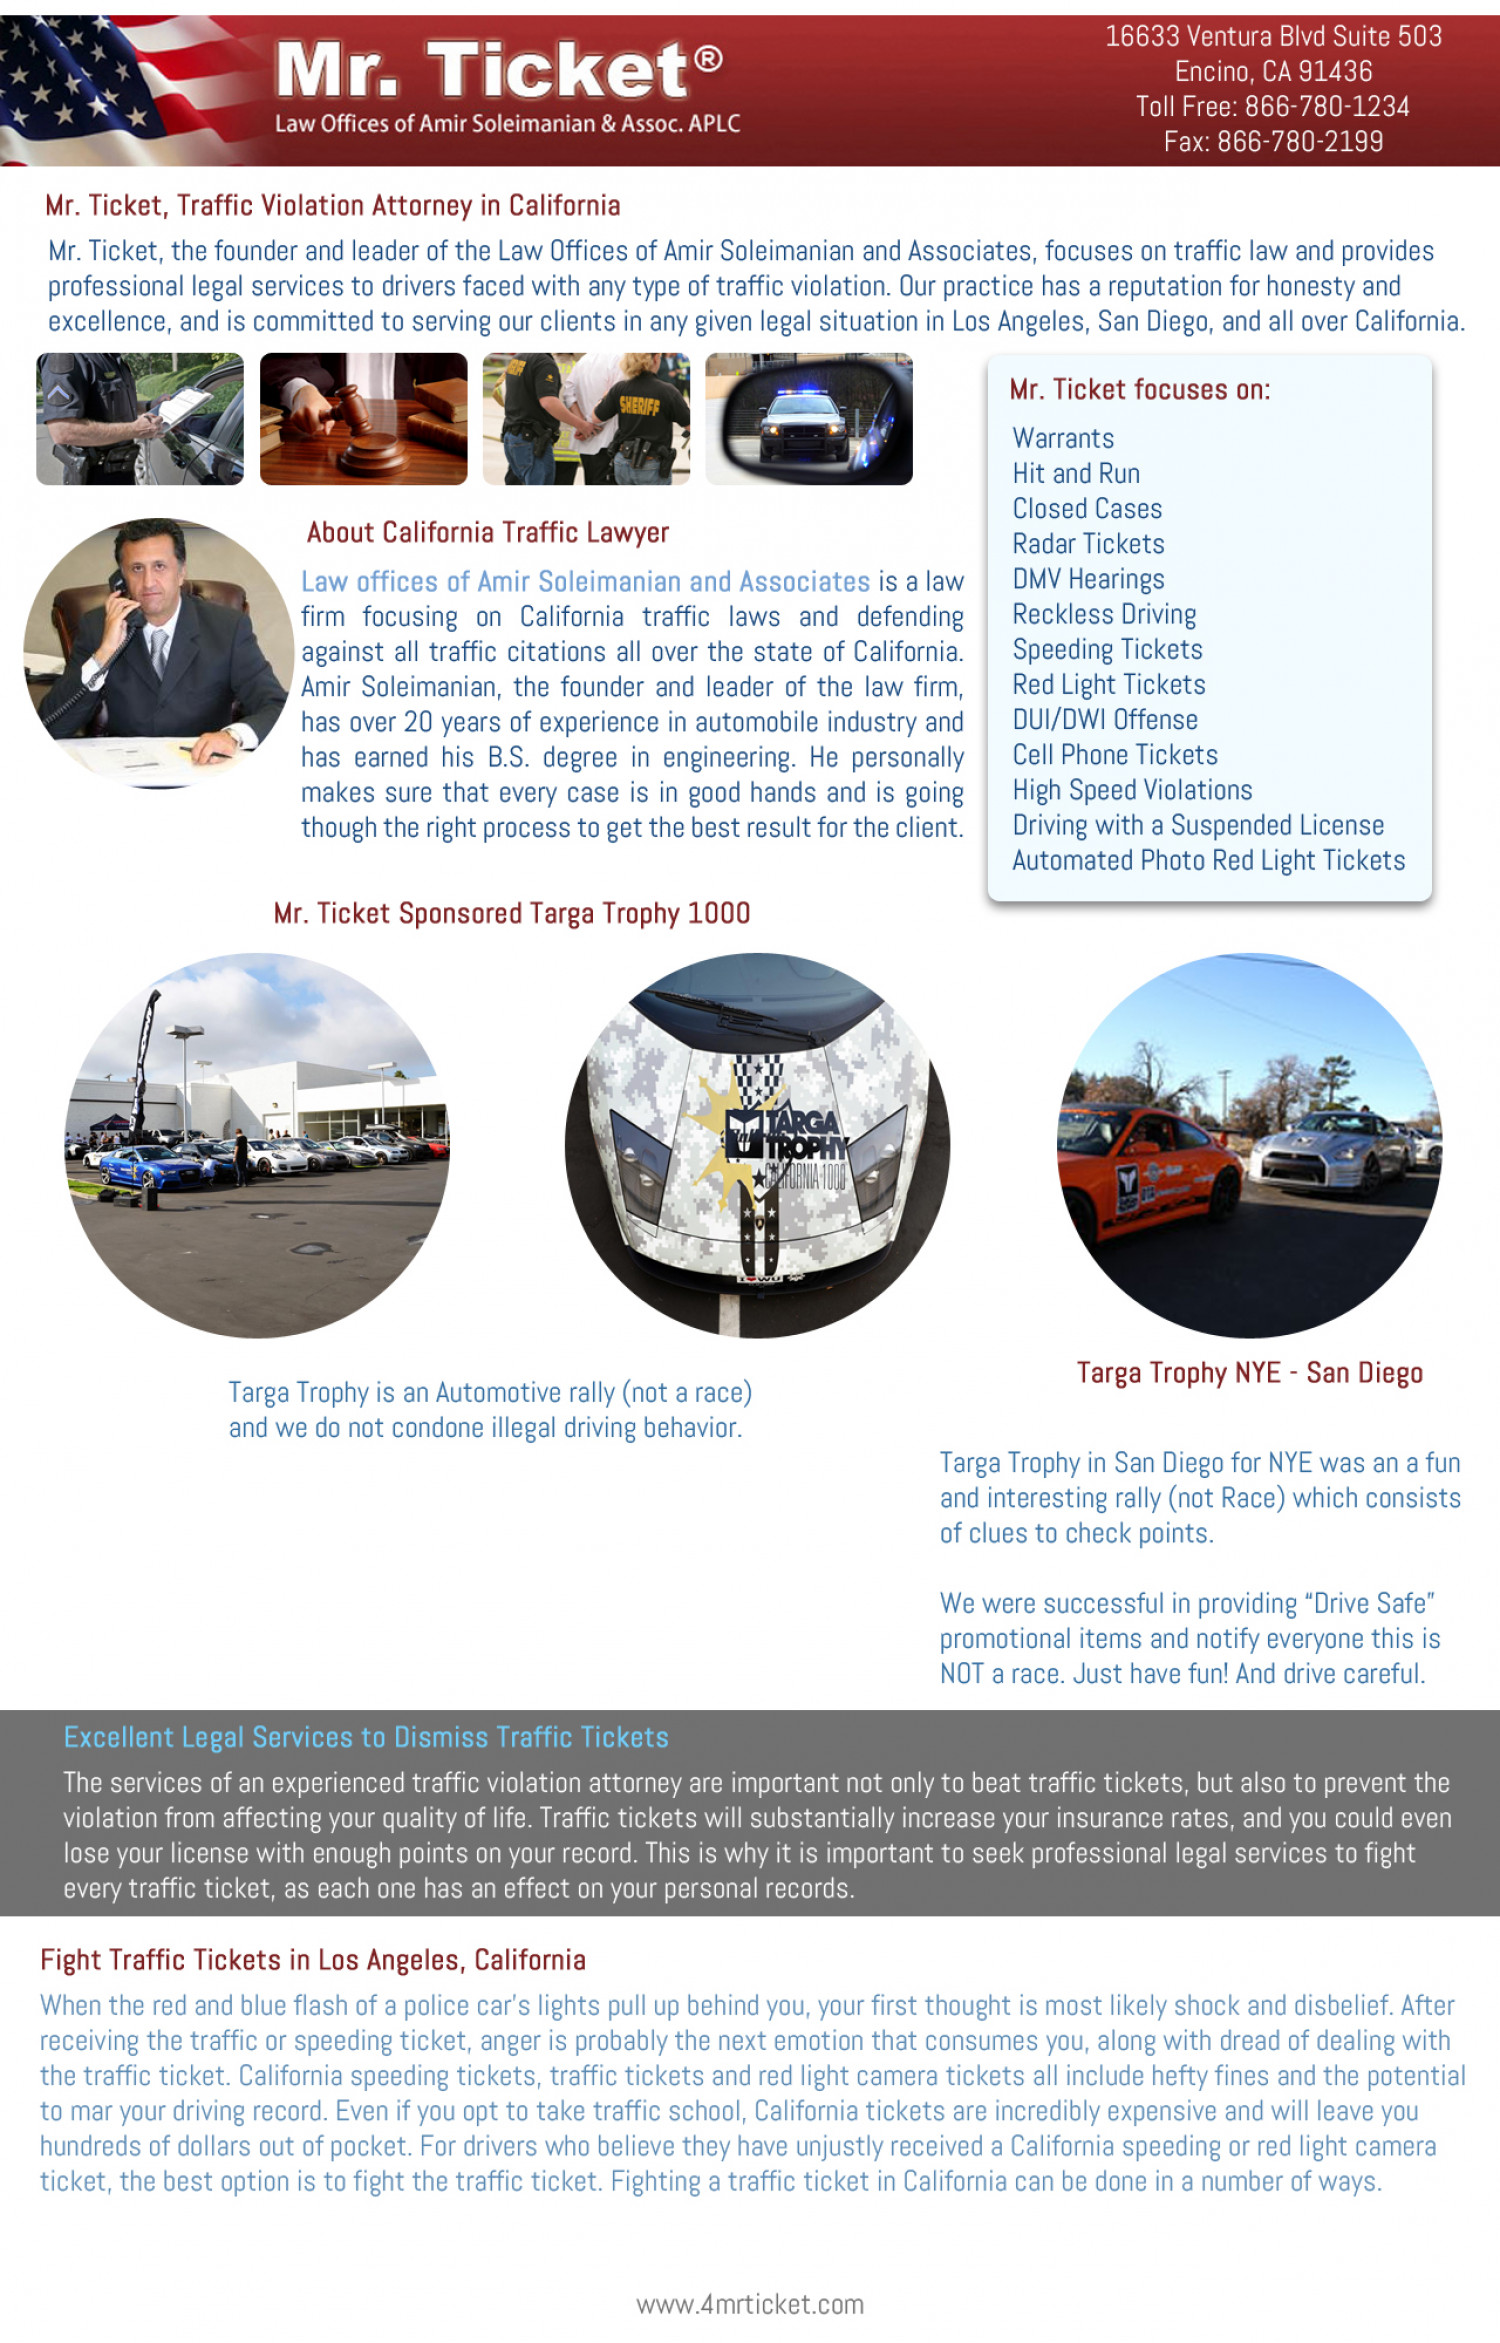 Traffic Violation Attorney Infographic